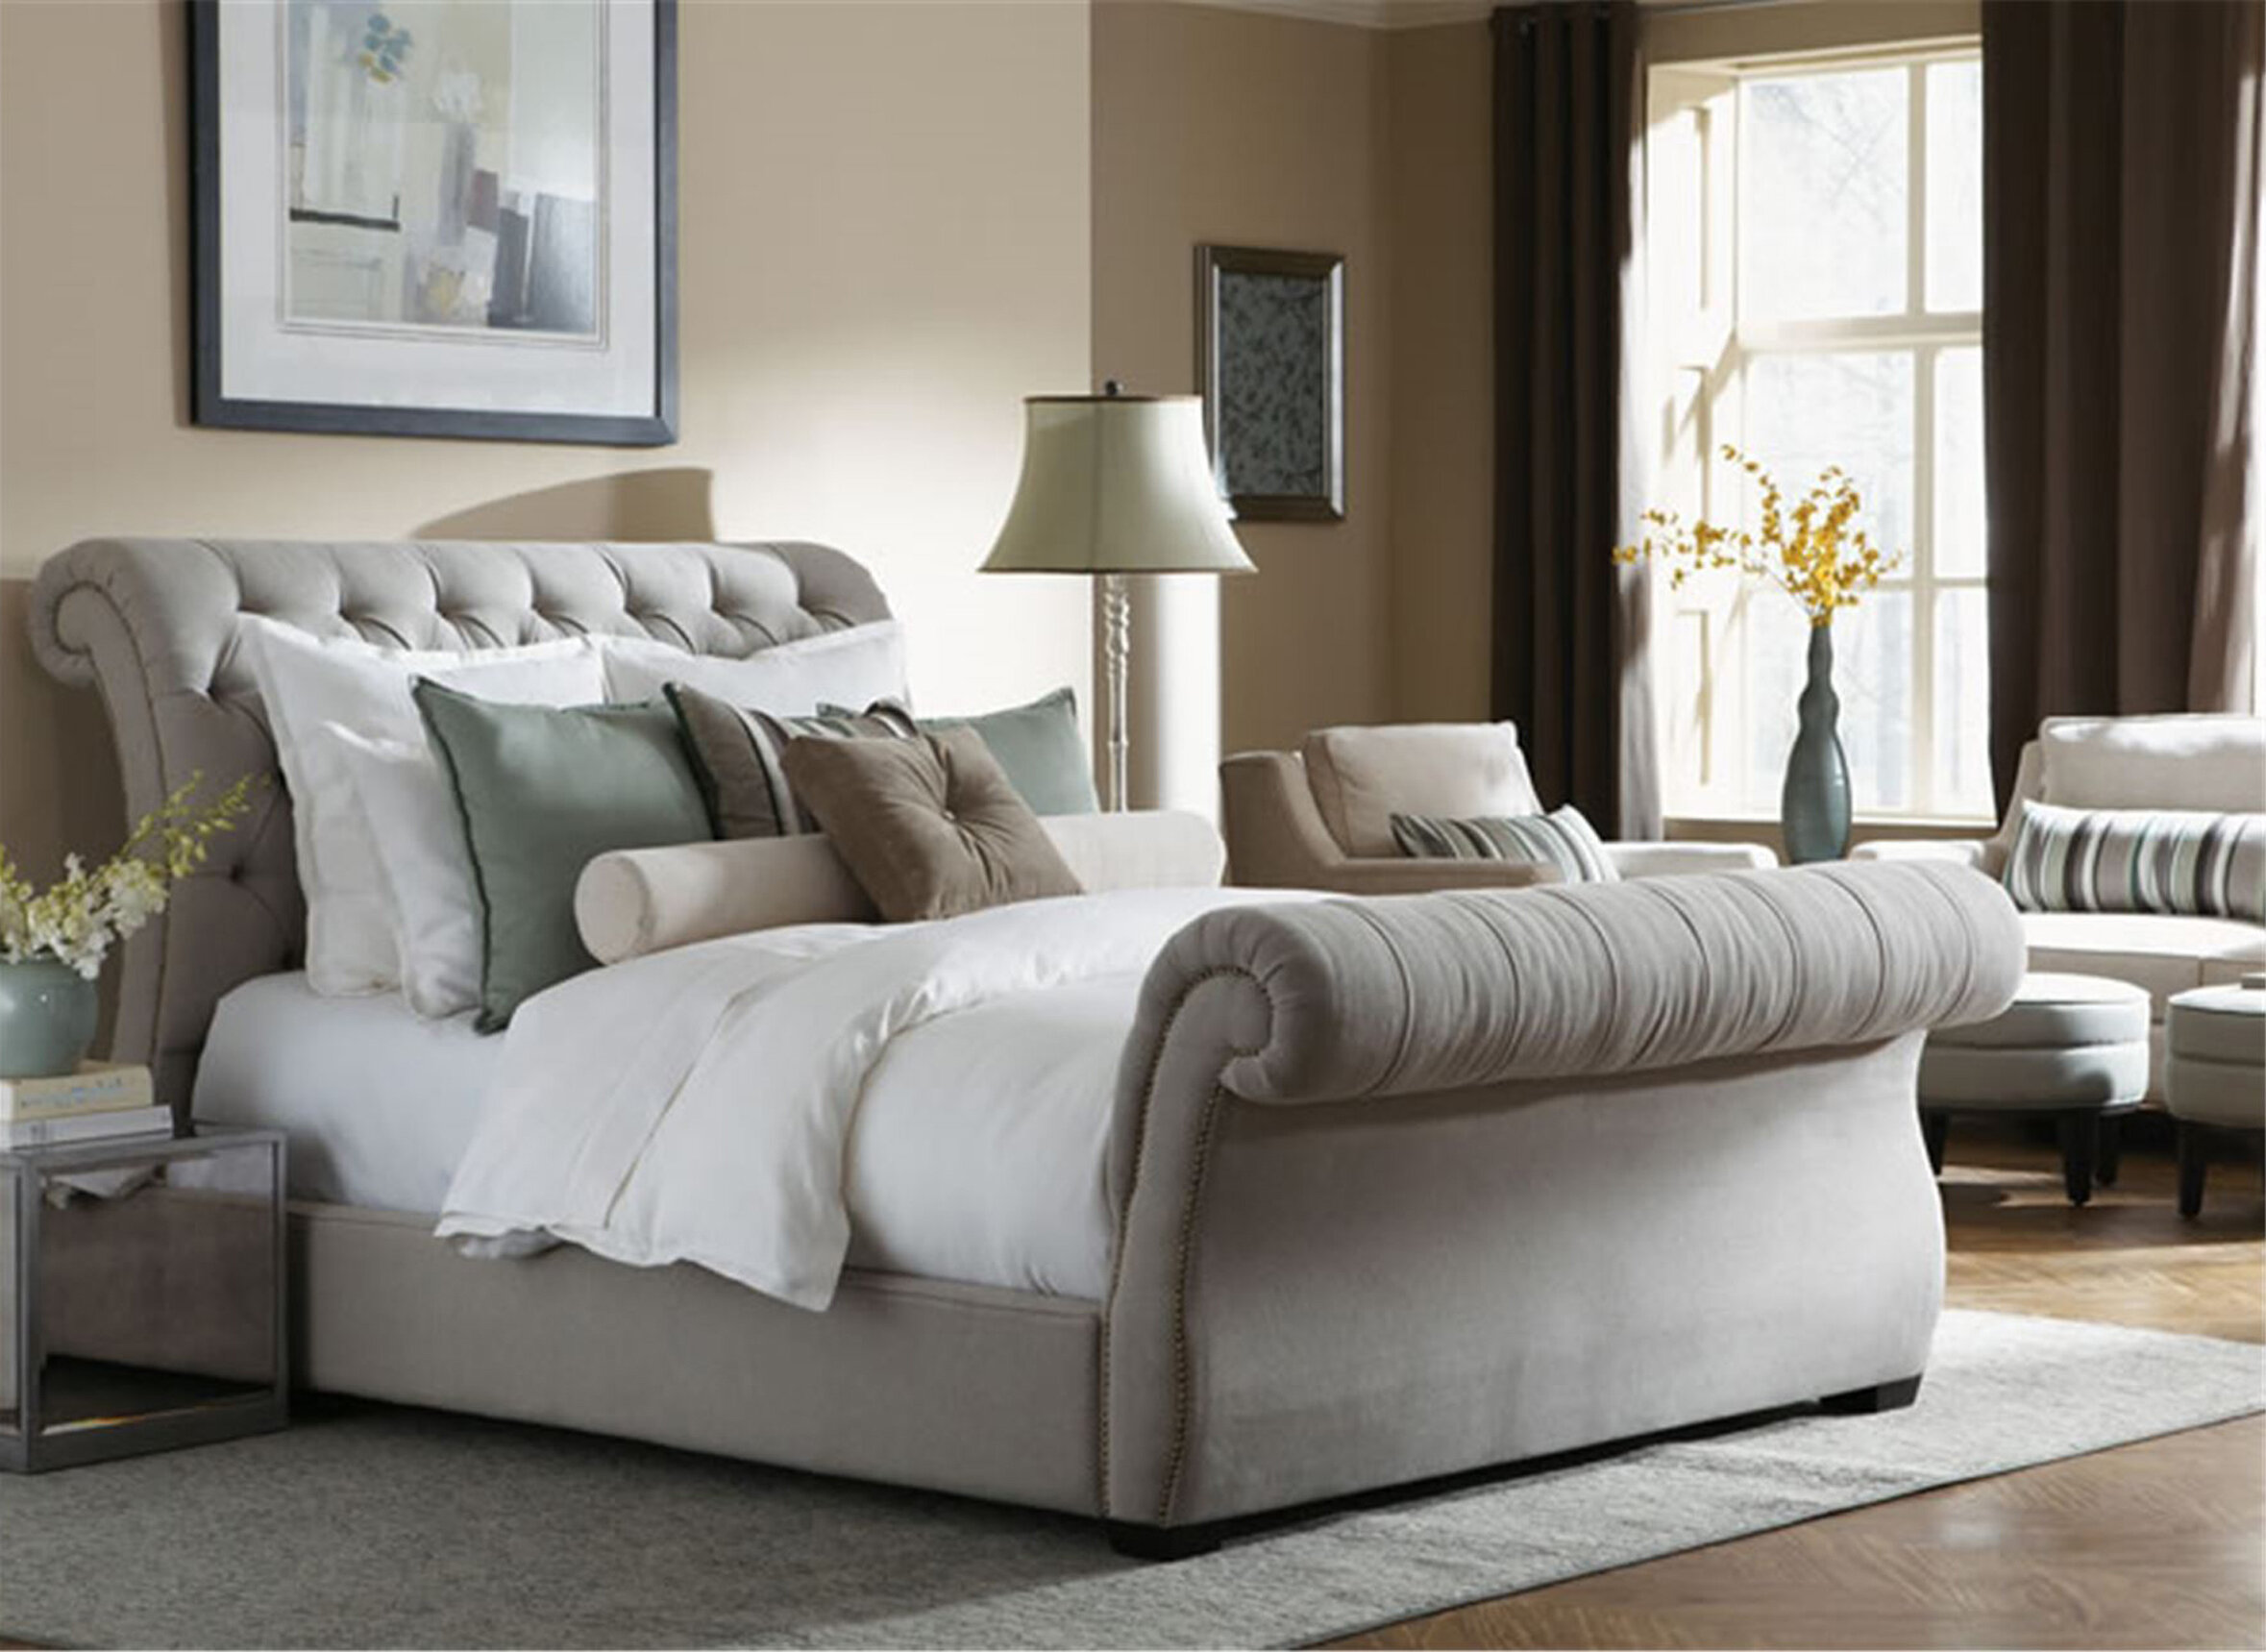 uk sleigh reviews home upholstered pdp wayfair furniture co bed tingha haus